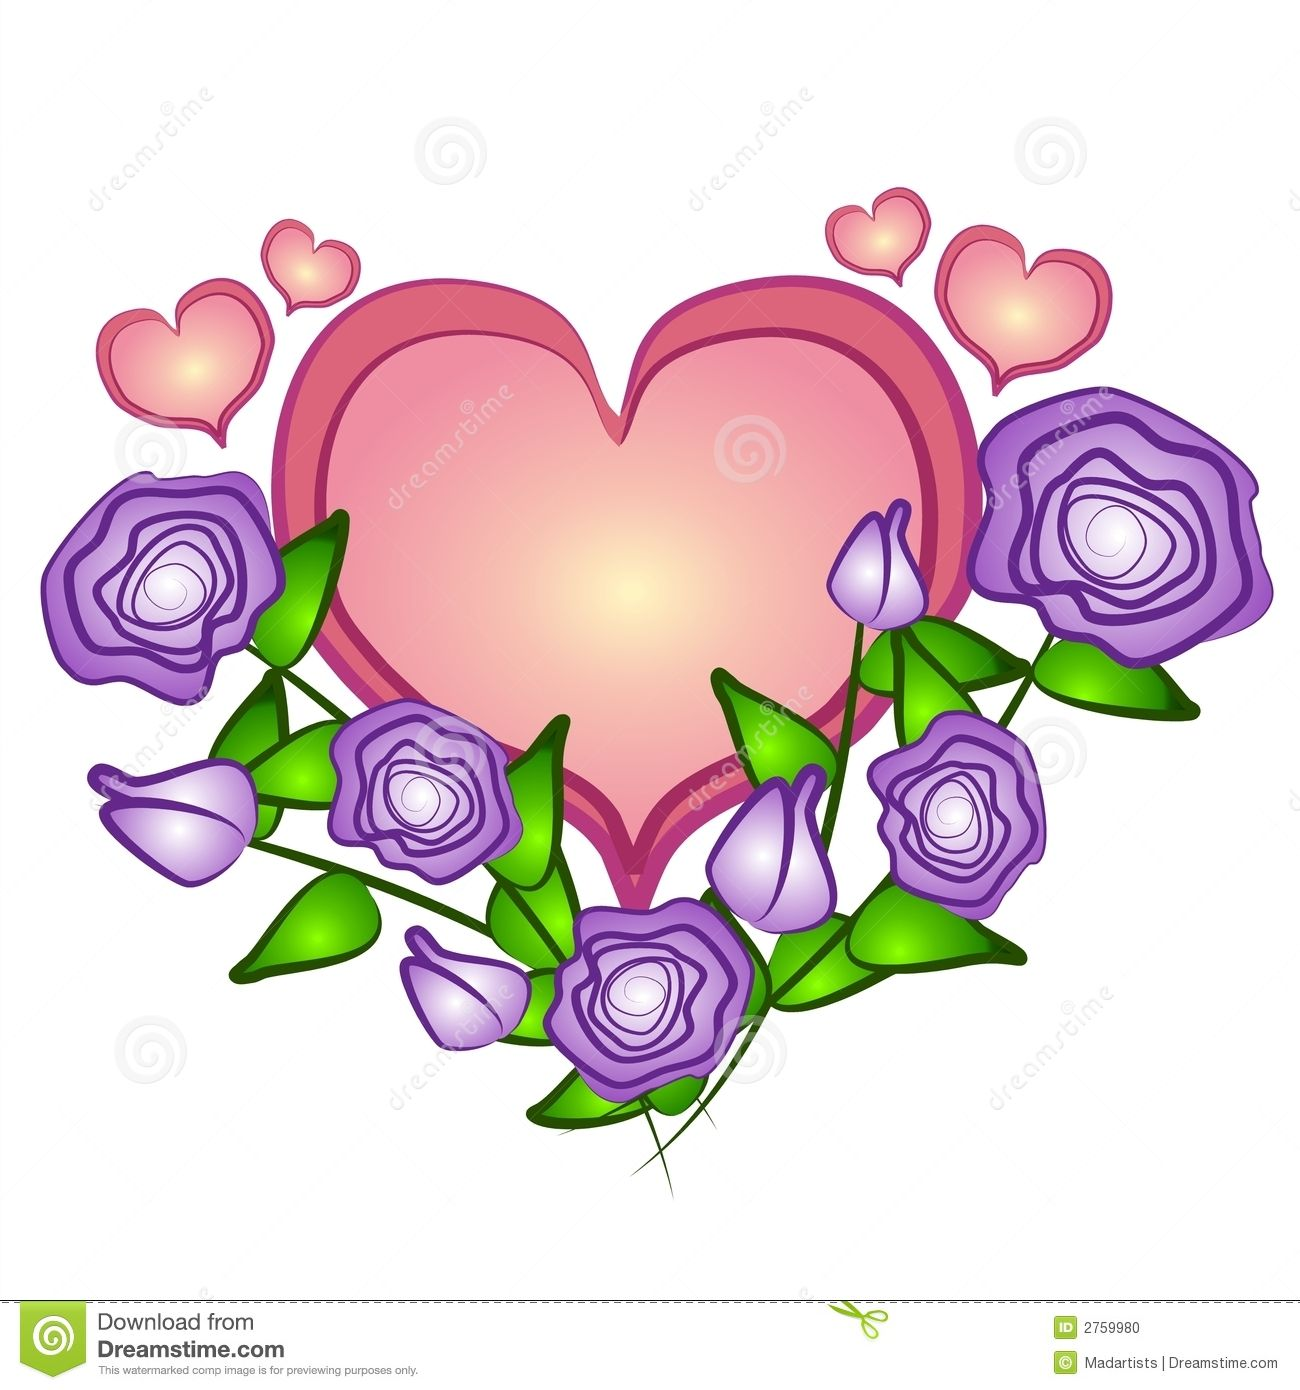 Hearts clipart mothers day. Flowers free large images